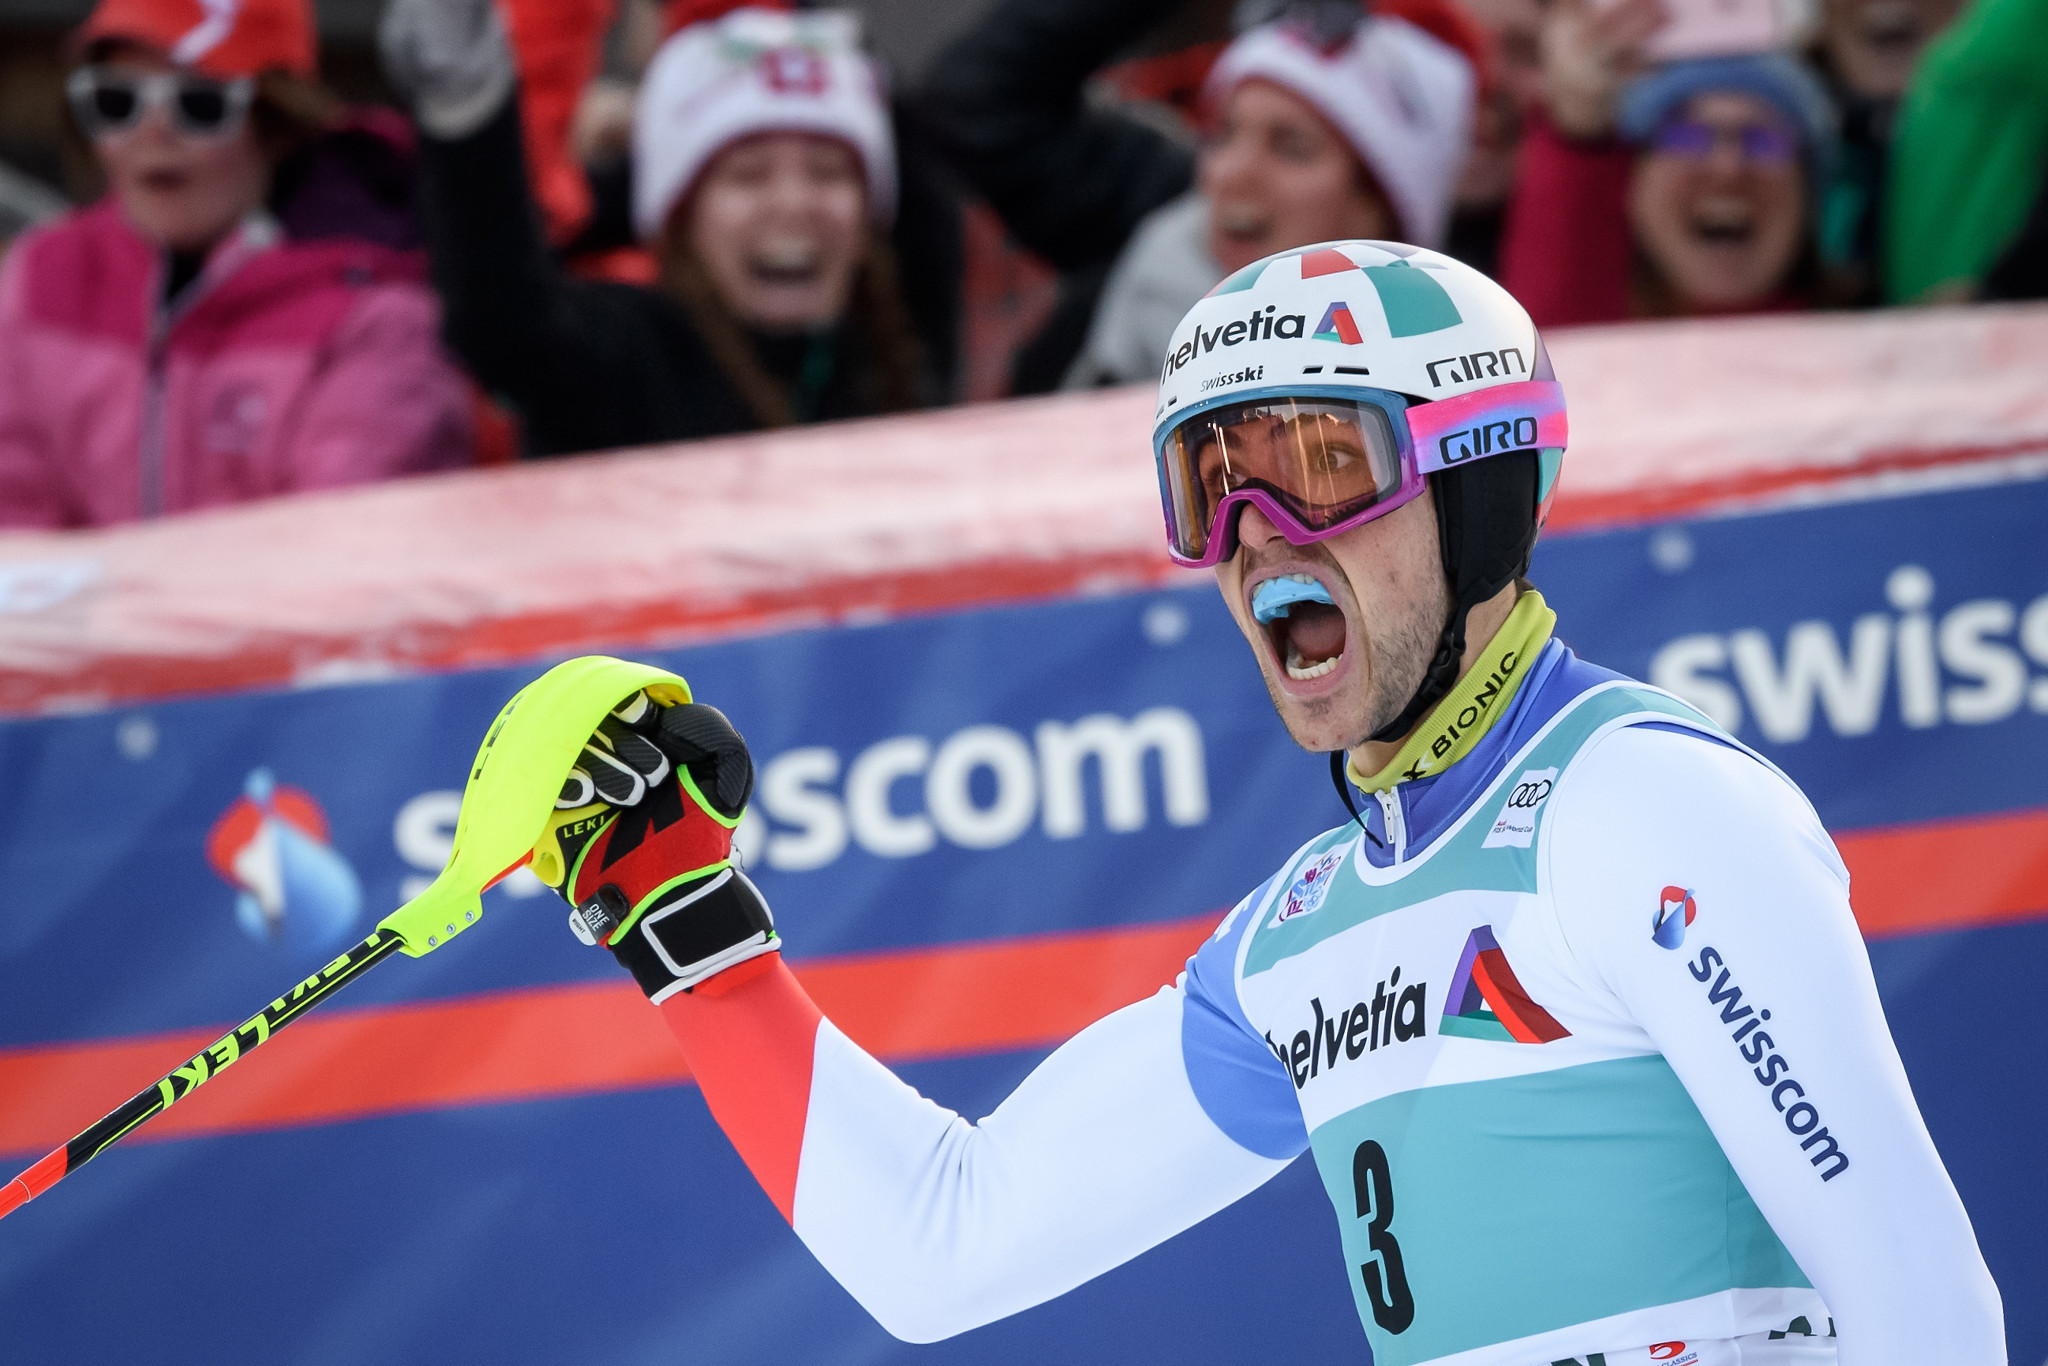 Yule earns second successive FIS Alpine Ski World Cup slalom win in Adelboden